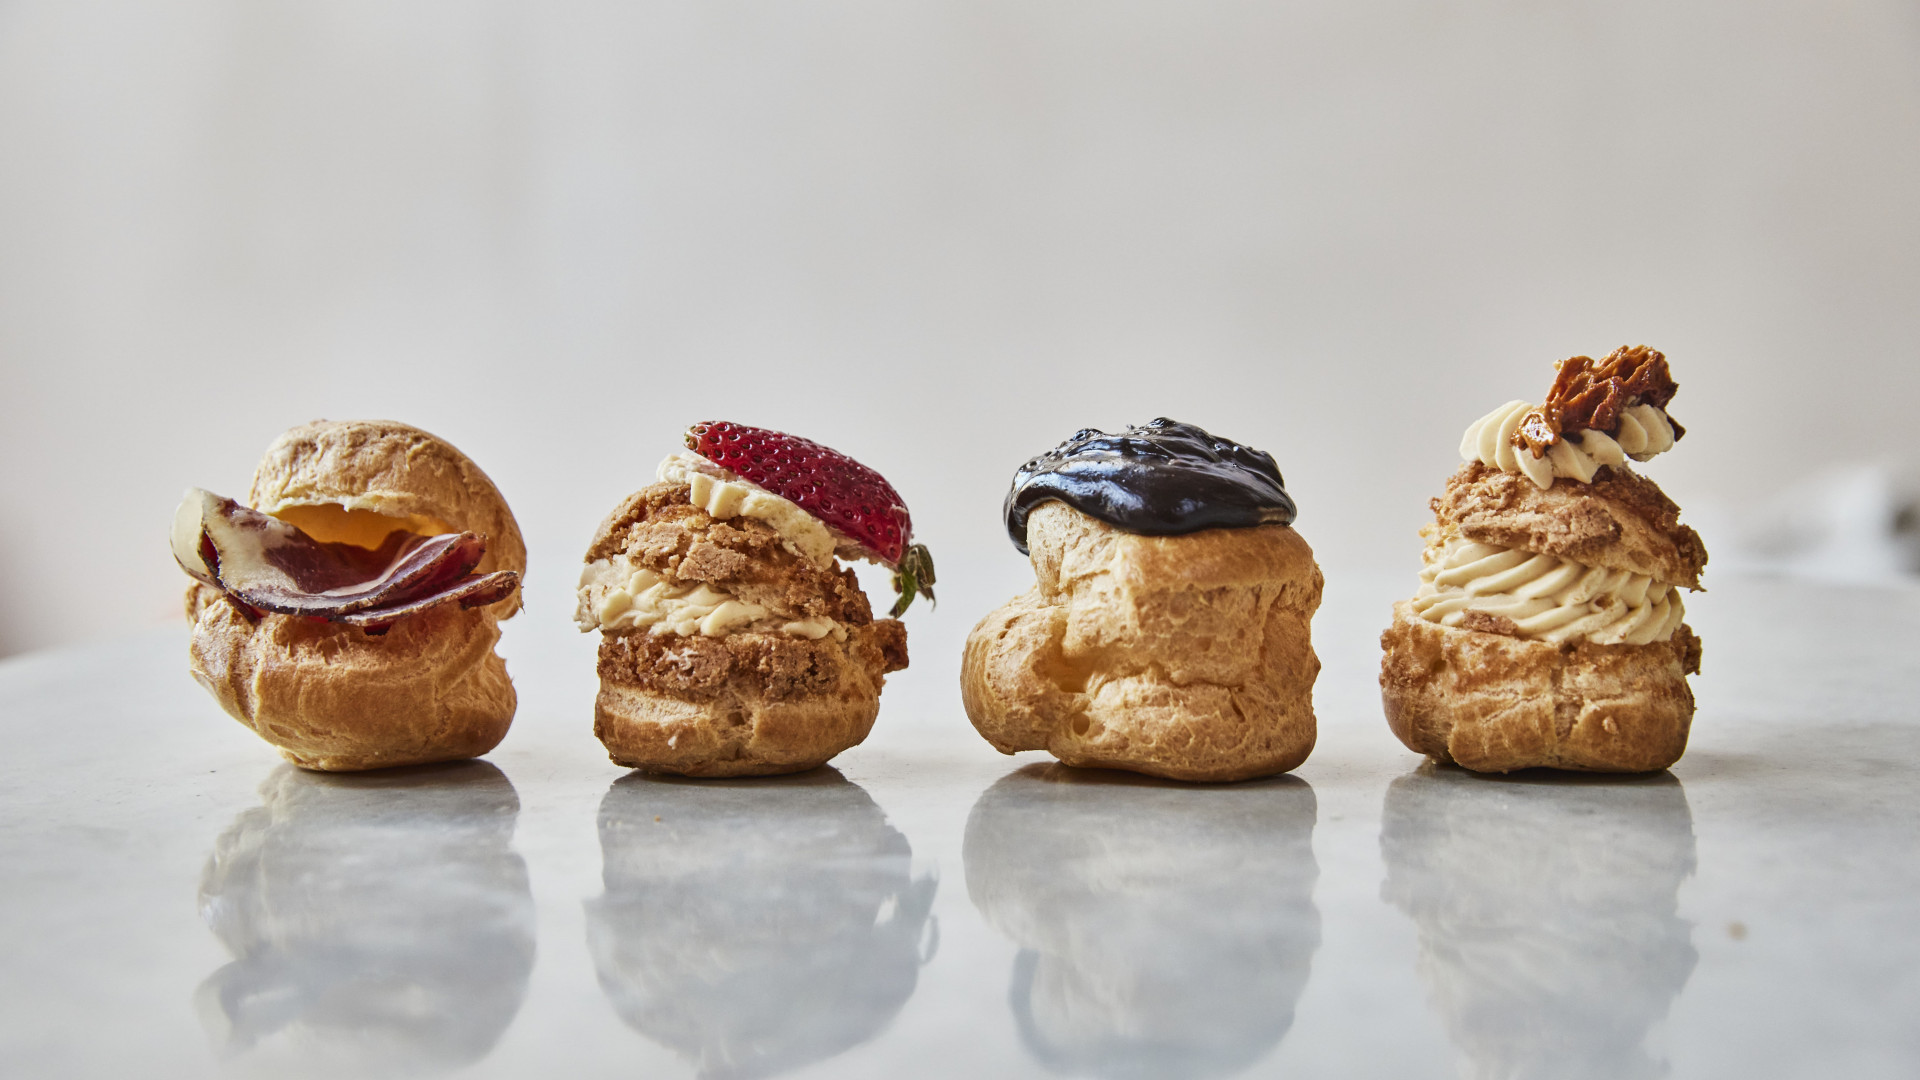 This is an image of the sweet and savoury profiteroles on The Proof's afternoon tea